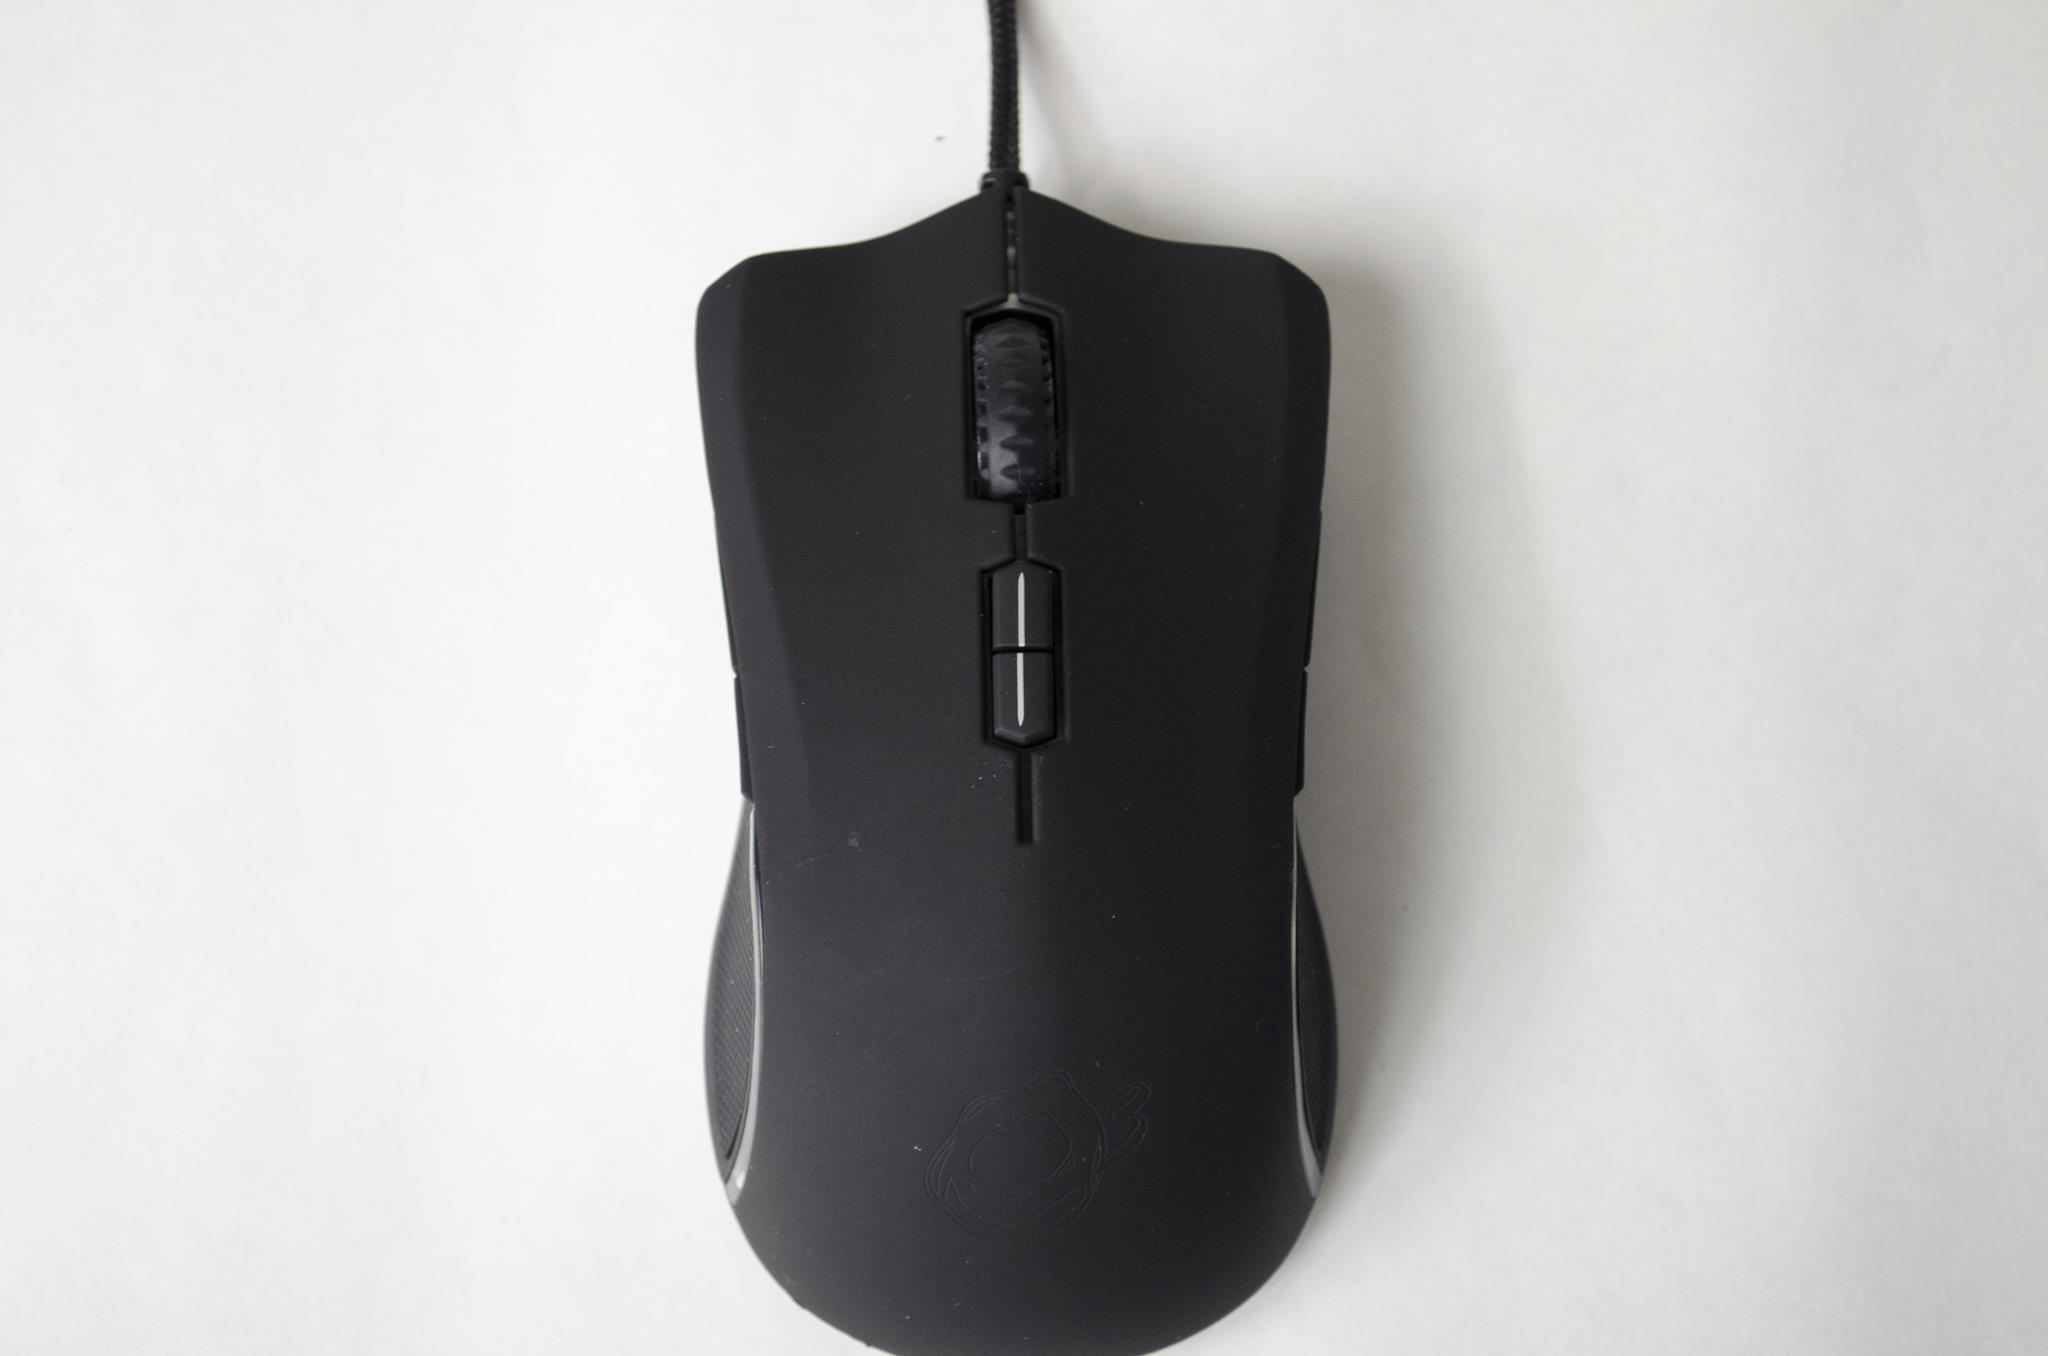 Ozone Argon Gaming Mouse review_7